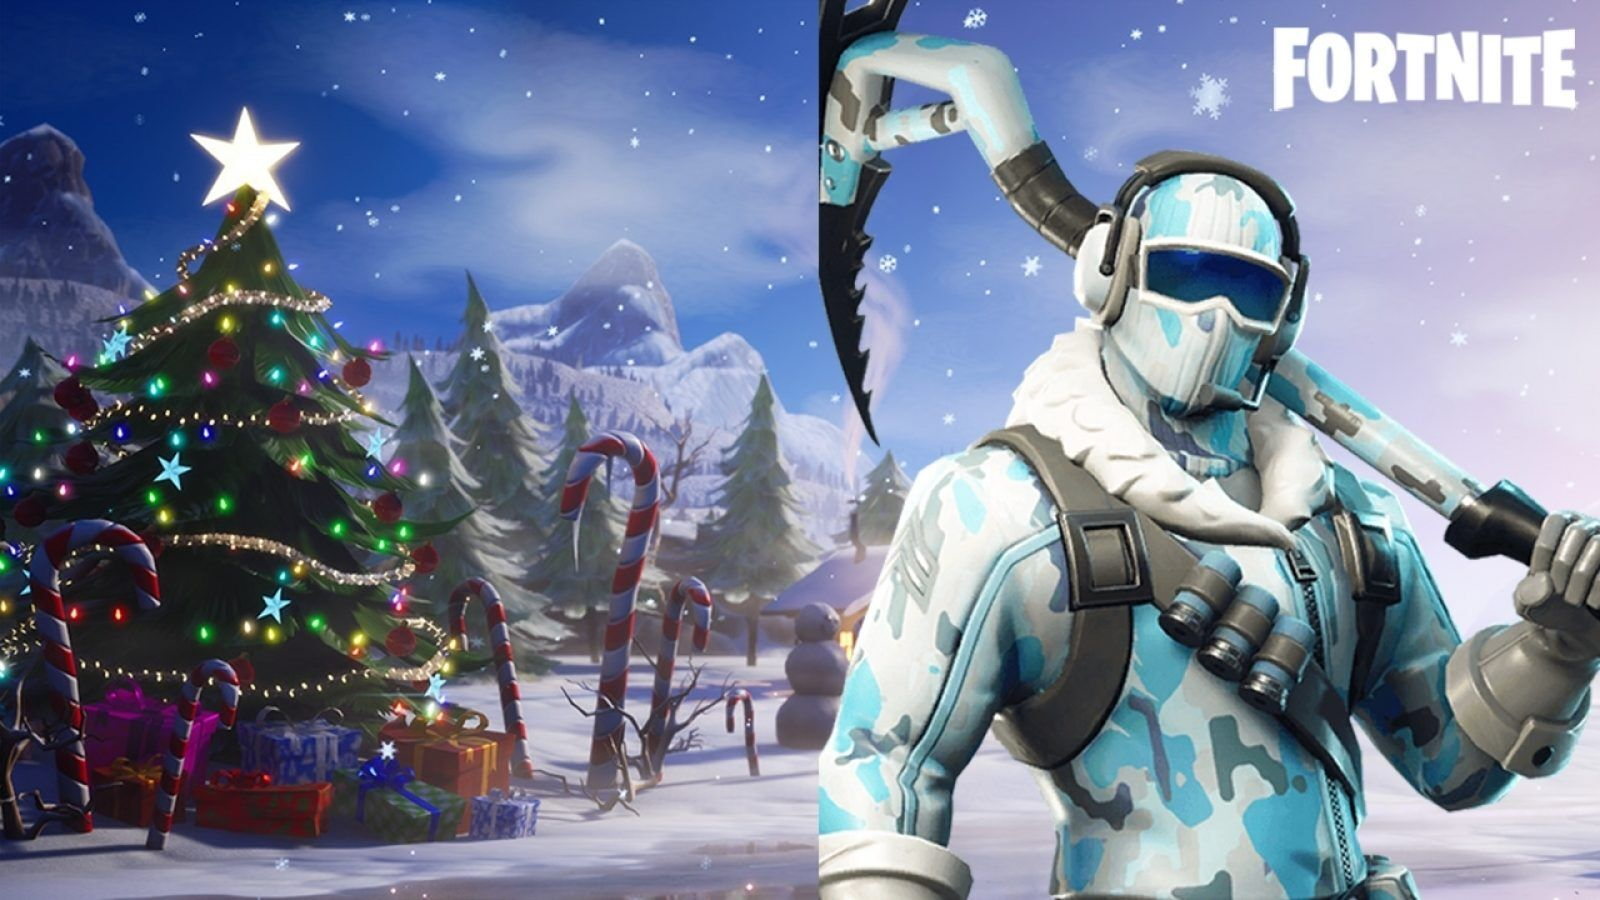 Fortnite Friday Season 7 Updates And Week 1 Challenges Fortnite